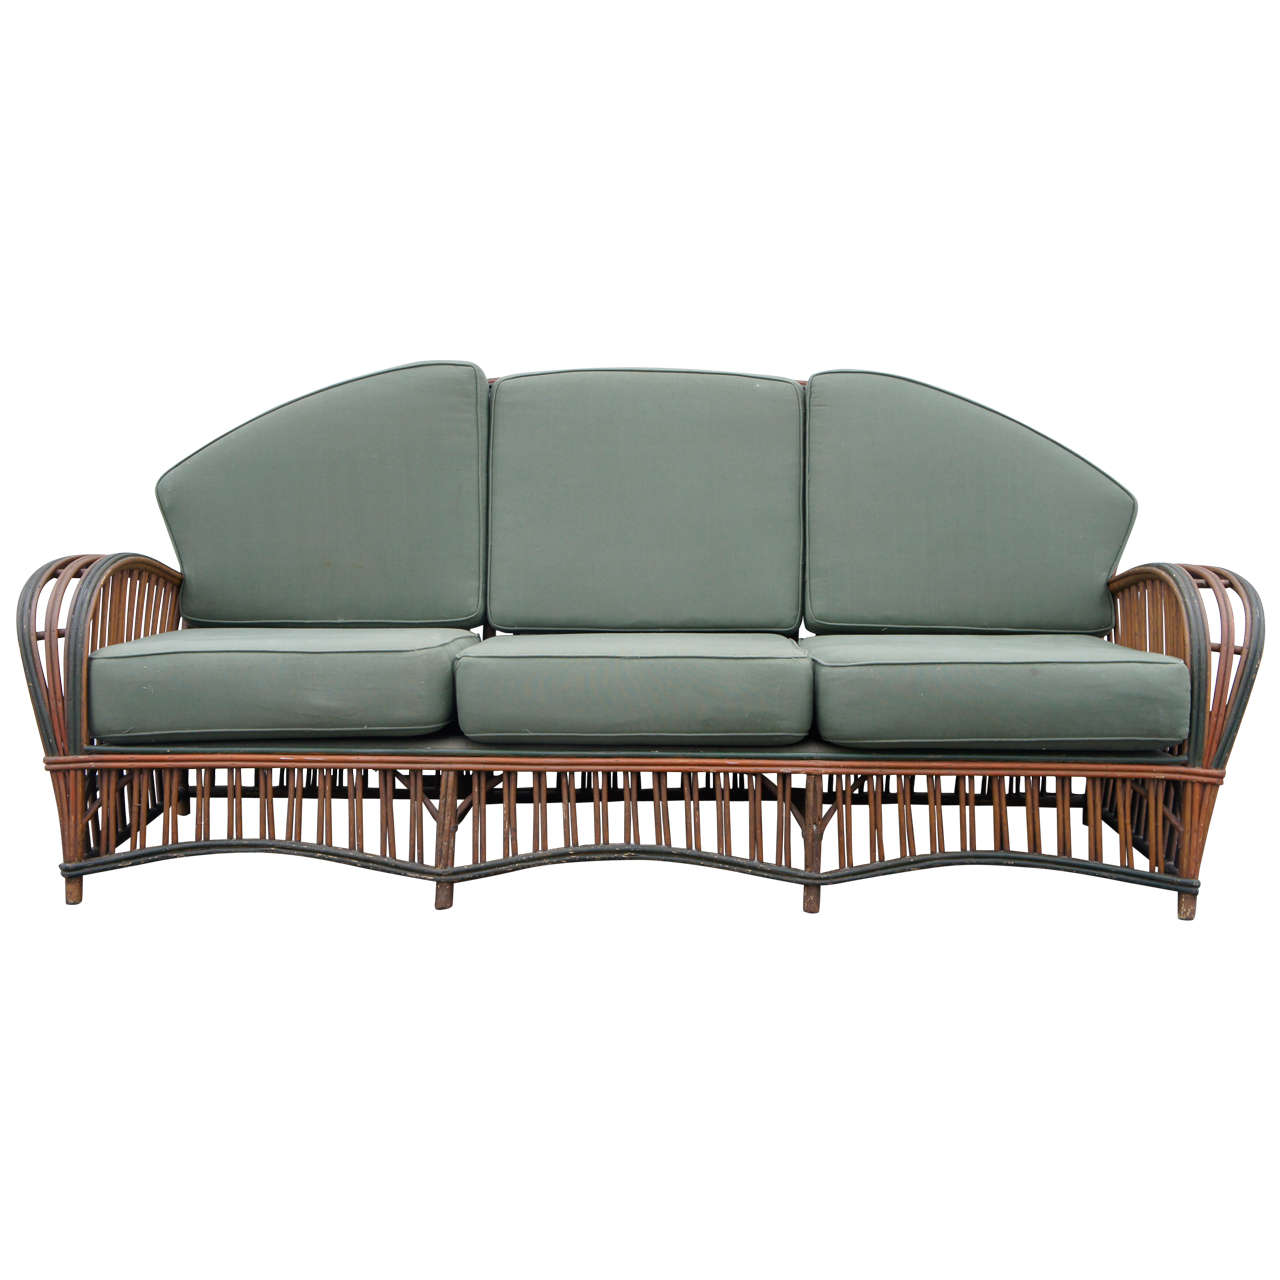 Sofa Dreams France Stick Wicker Sofa At 1stdibs